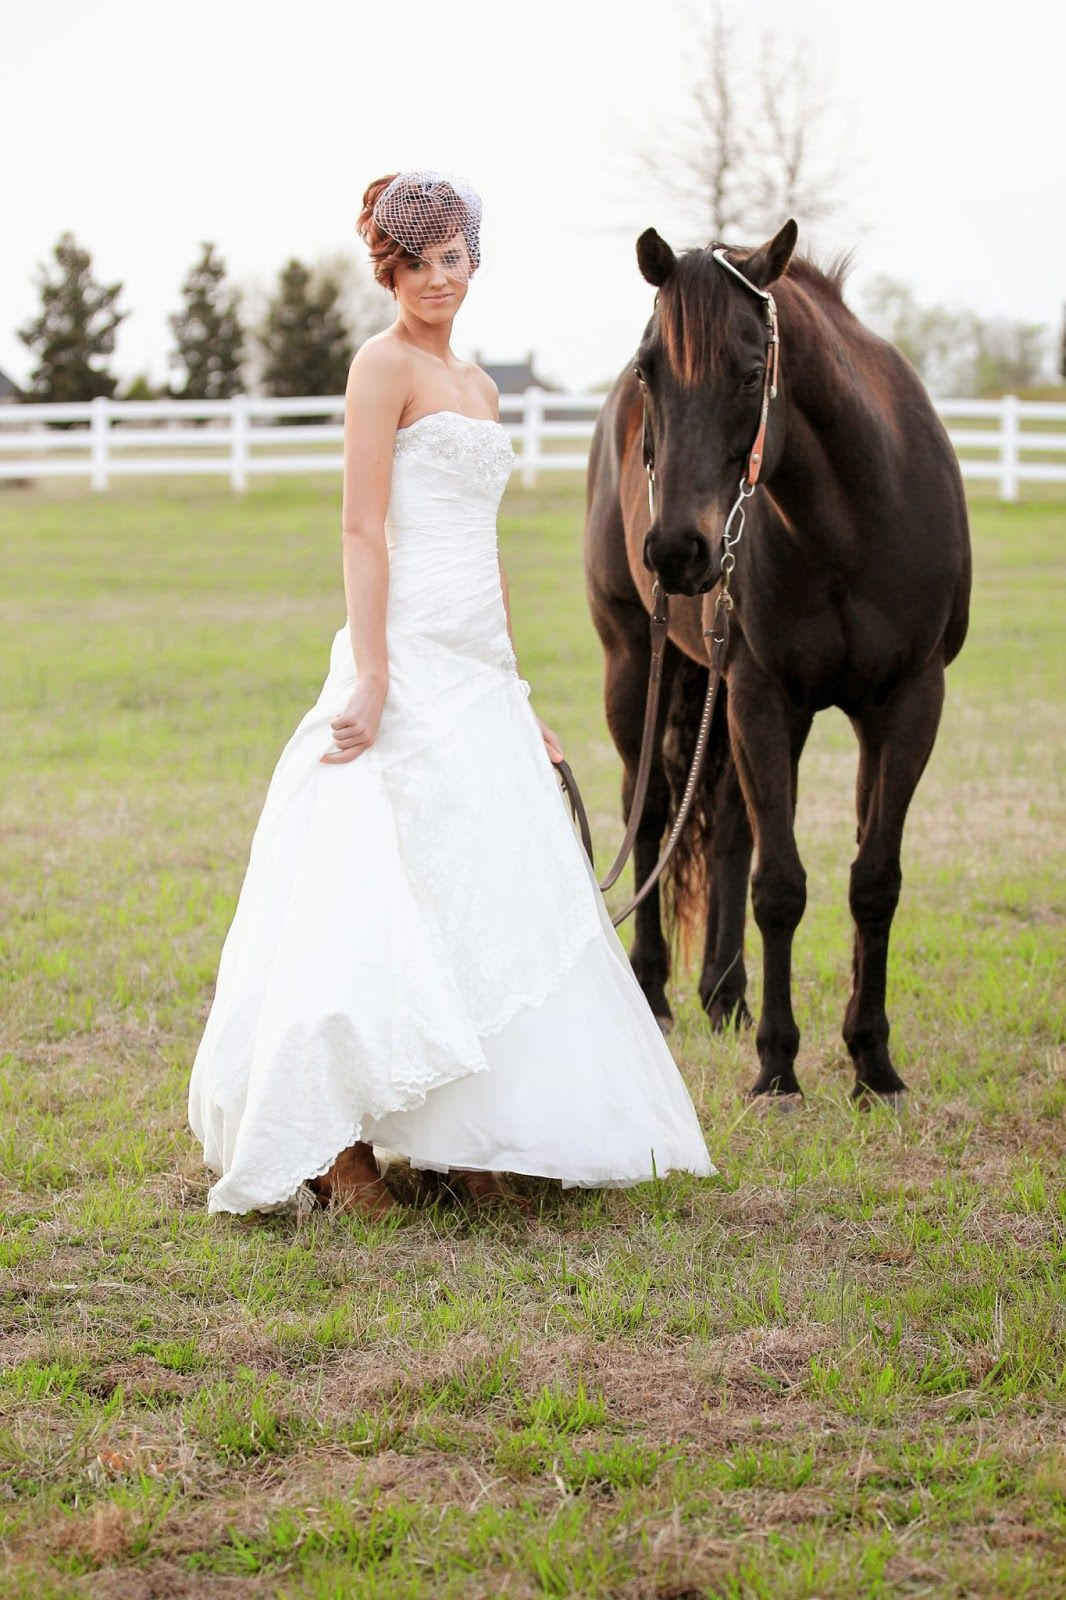 Bridal picture with horse